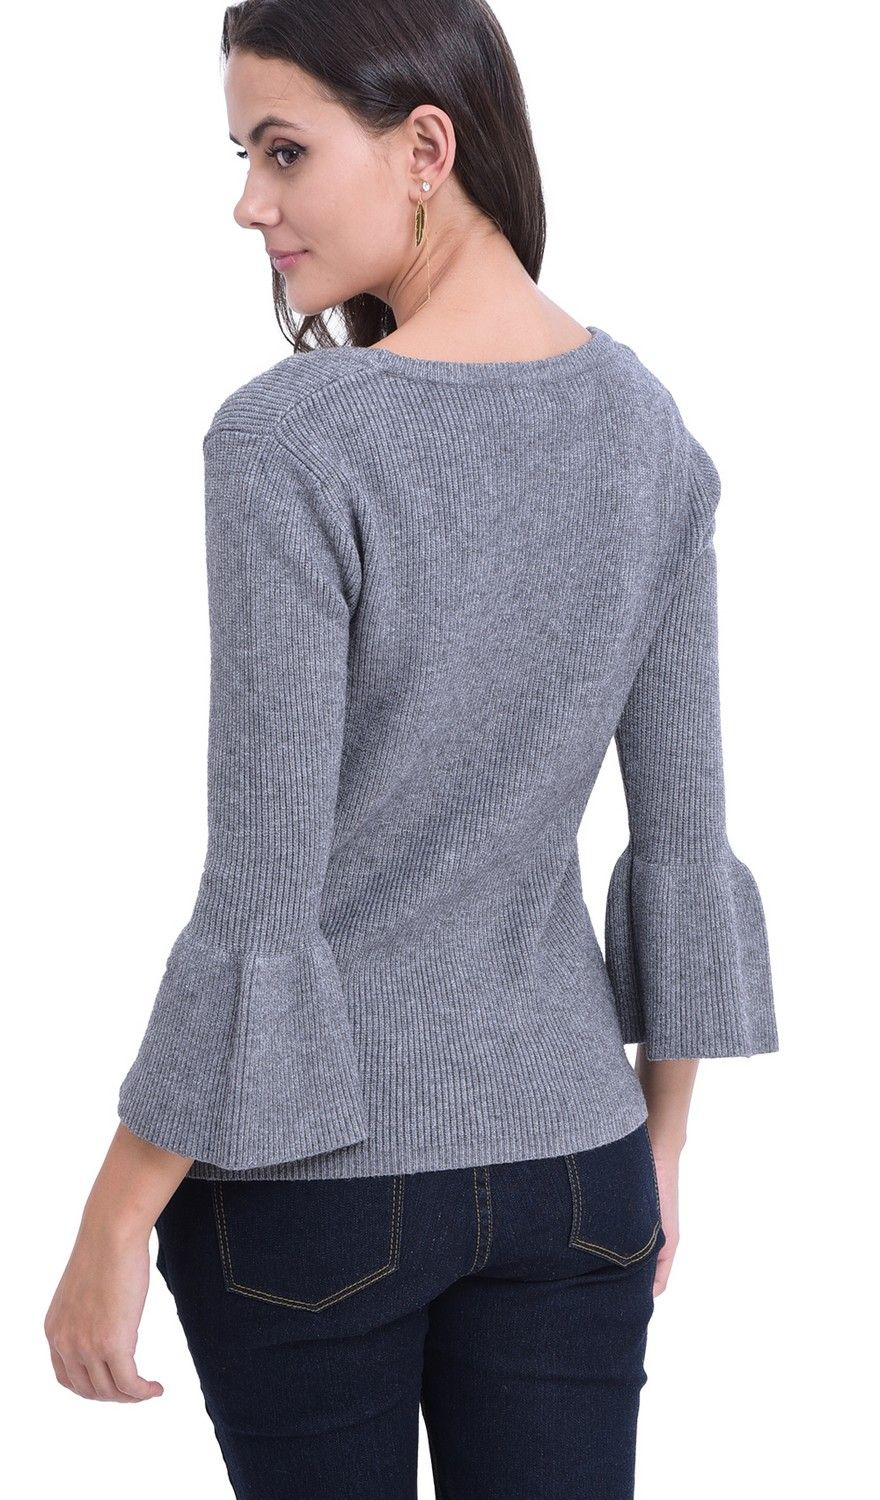 William De Faye Round Neck Sweater with Babydoll Sleeves in Grey